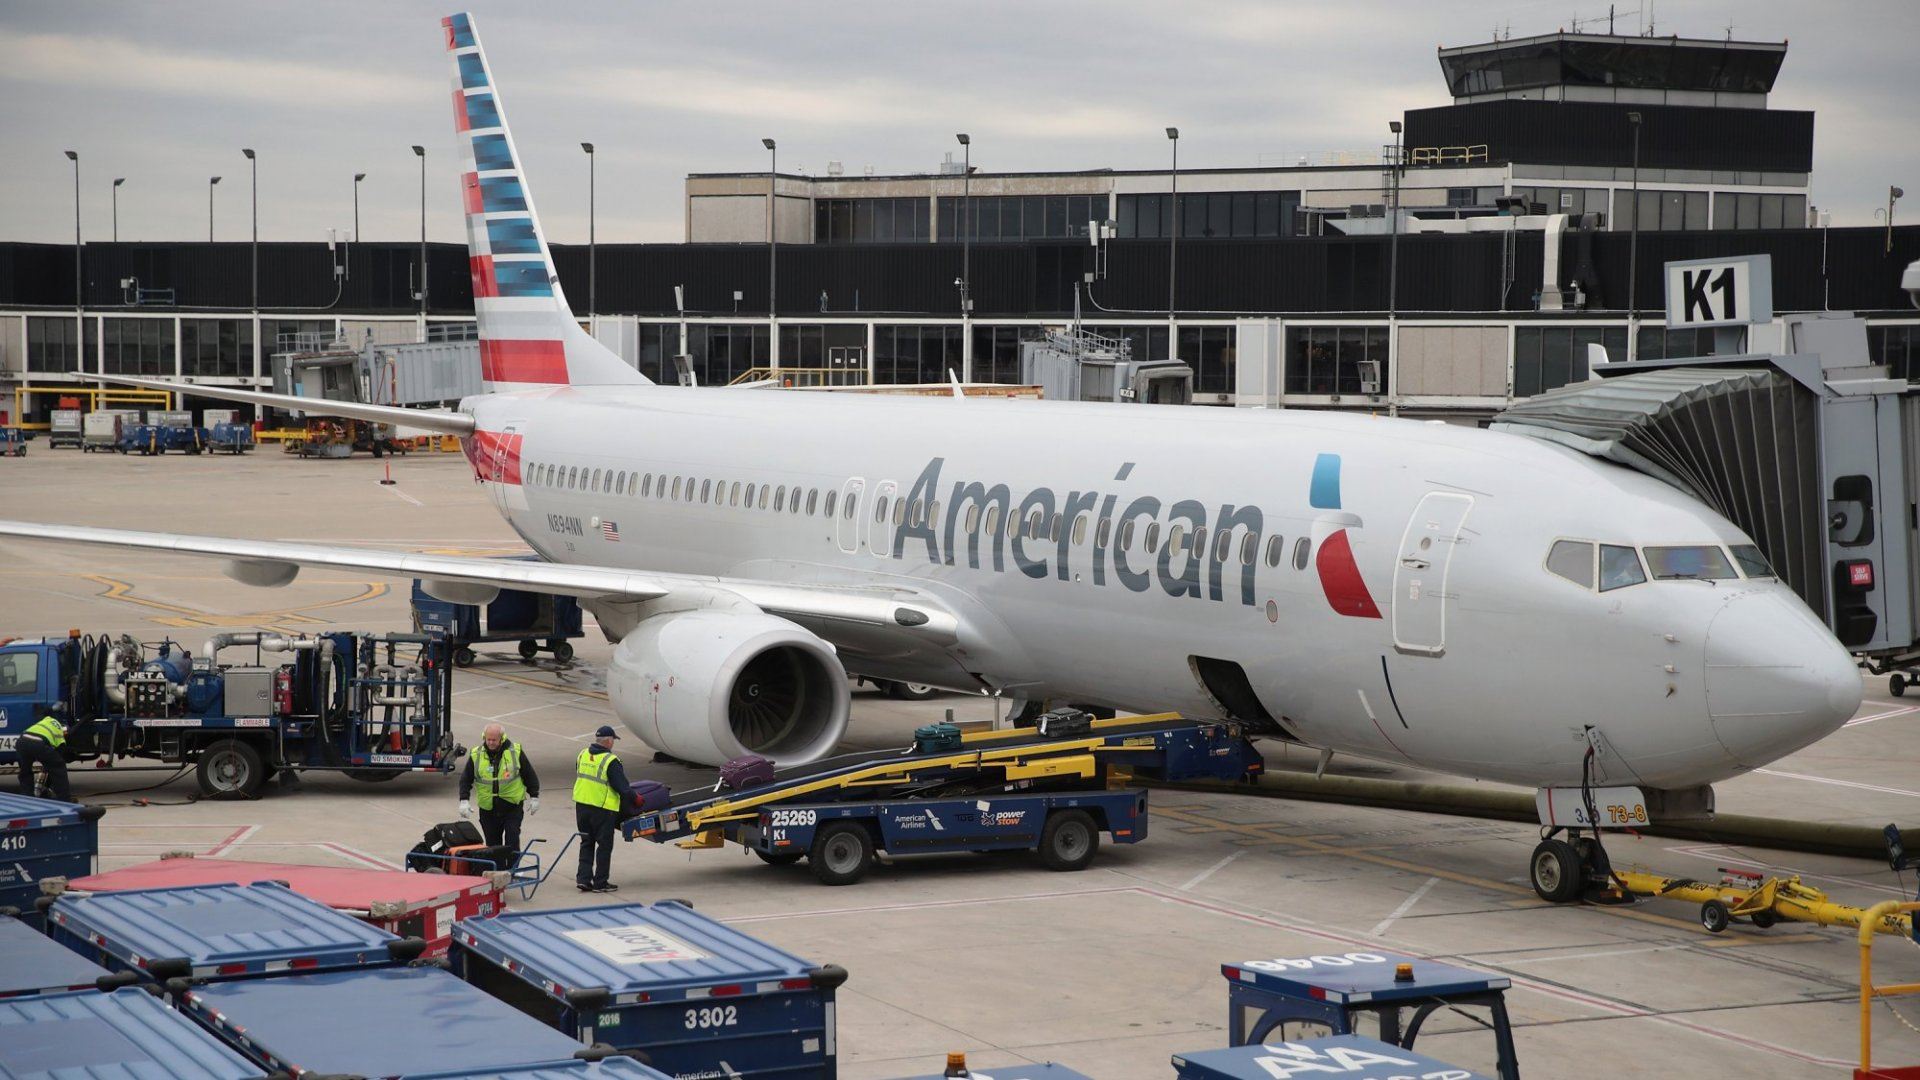 American Airlines Was Just Named the 2nd Best Airline In the World. The Reason Why Is Eye-Opening